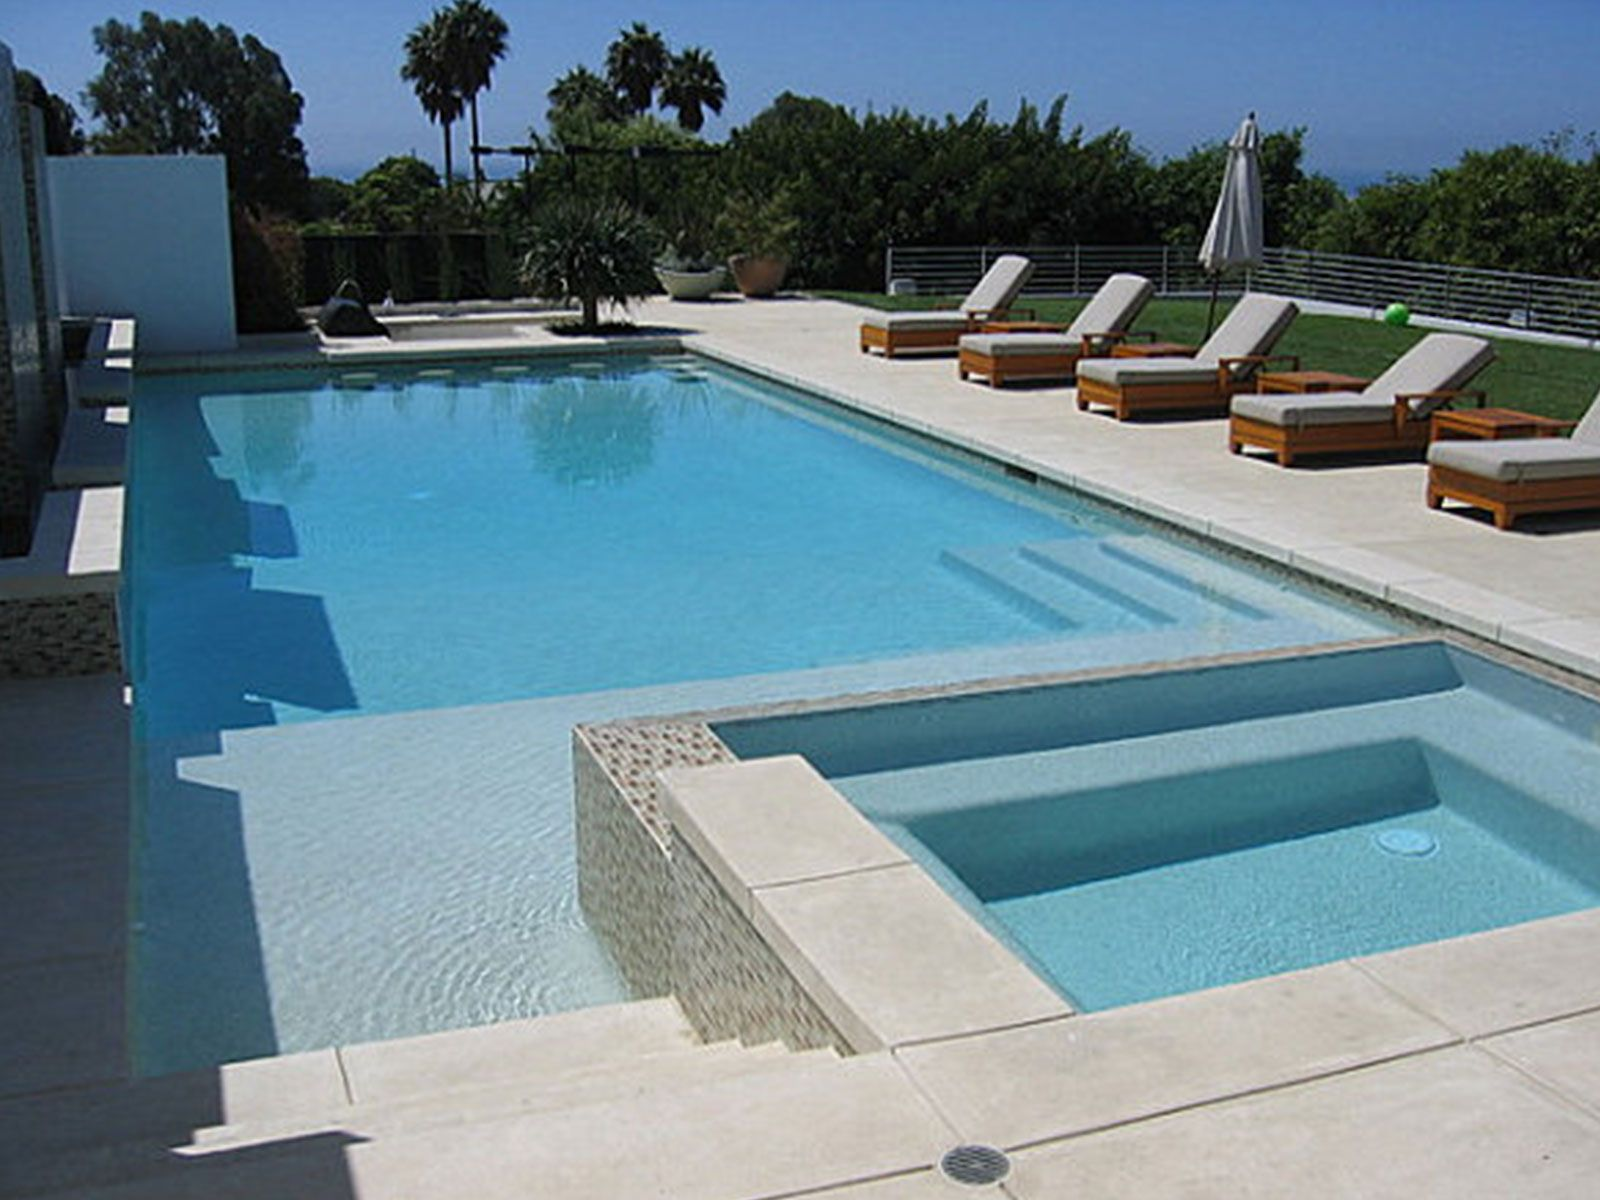 Simple swimming pool design image modern creative swimming for Swimming pool spa designs